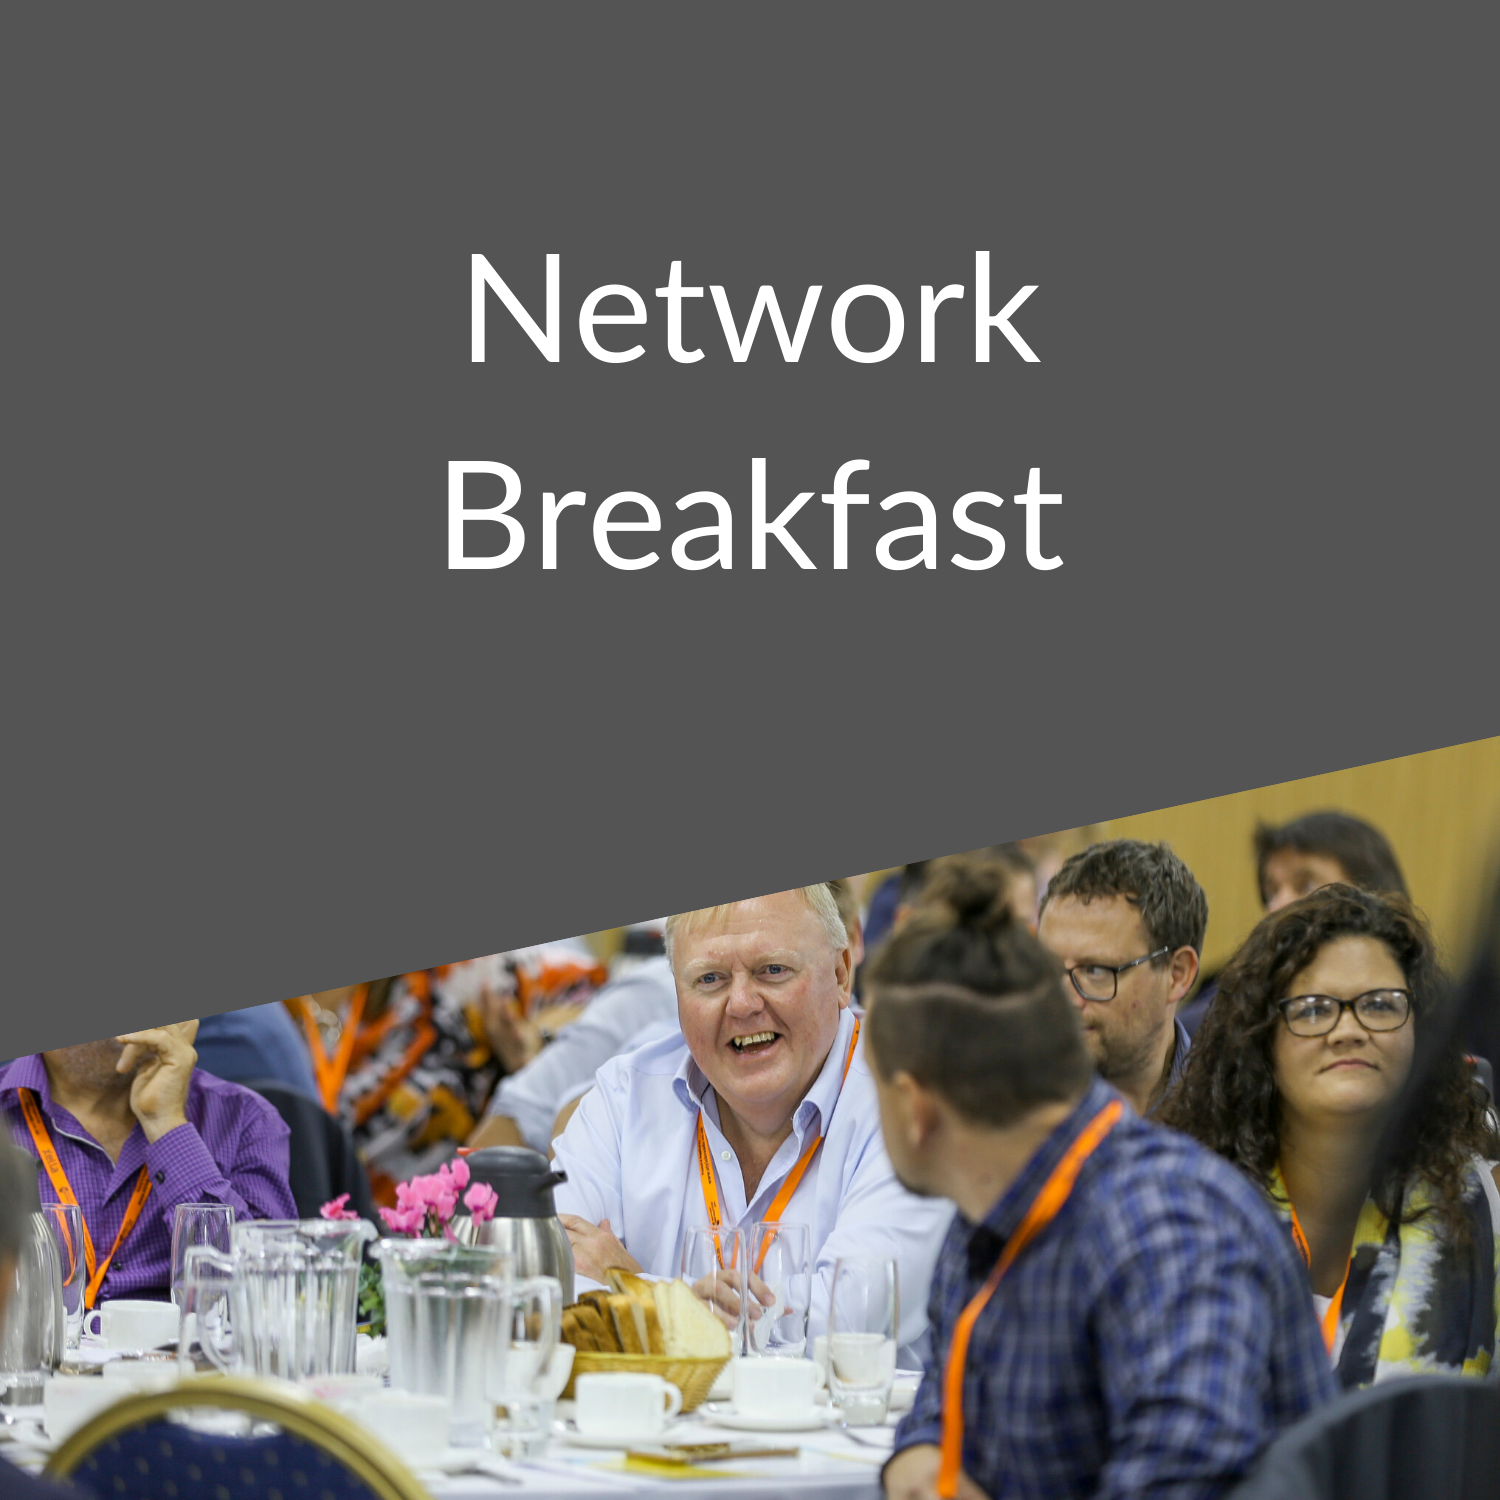 Construction Networking Breakfast Events